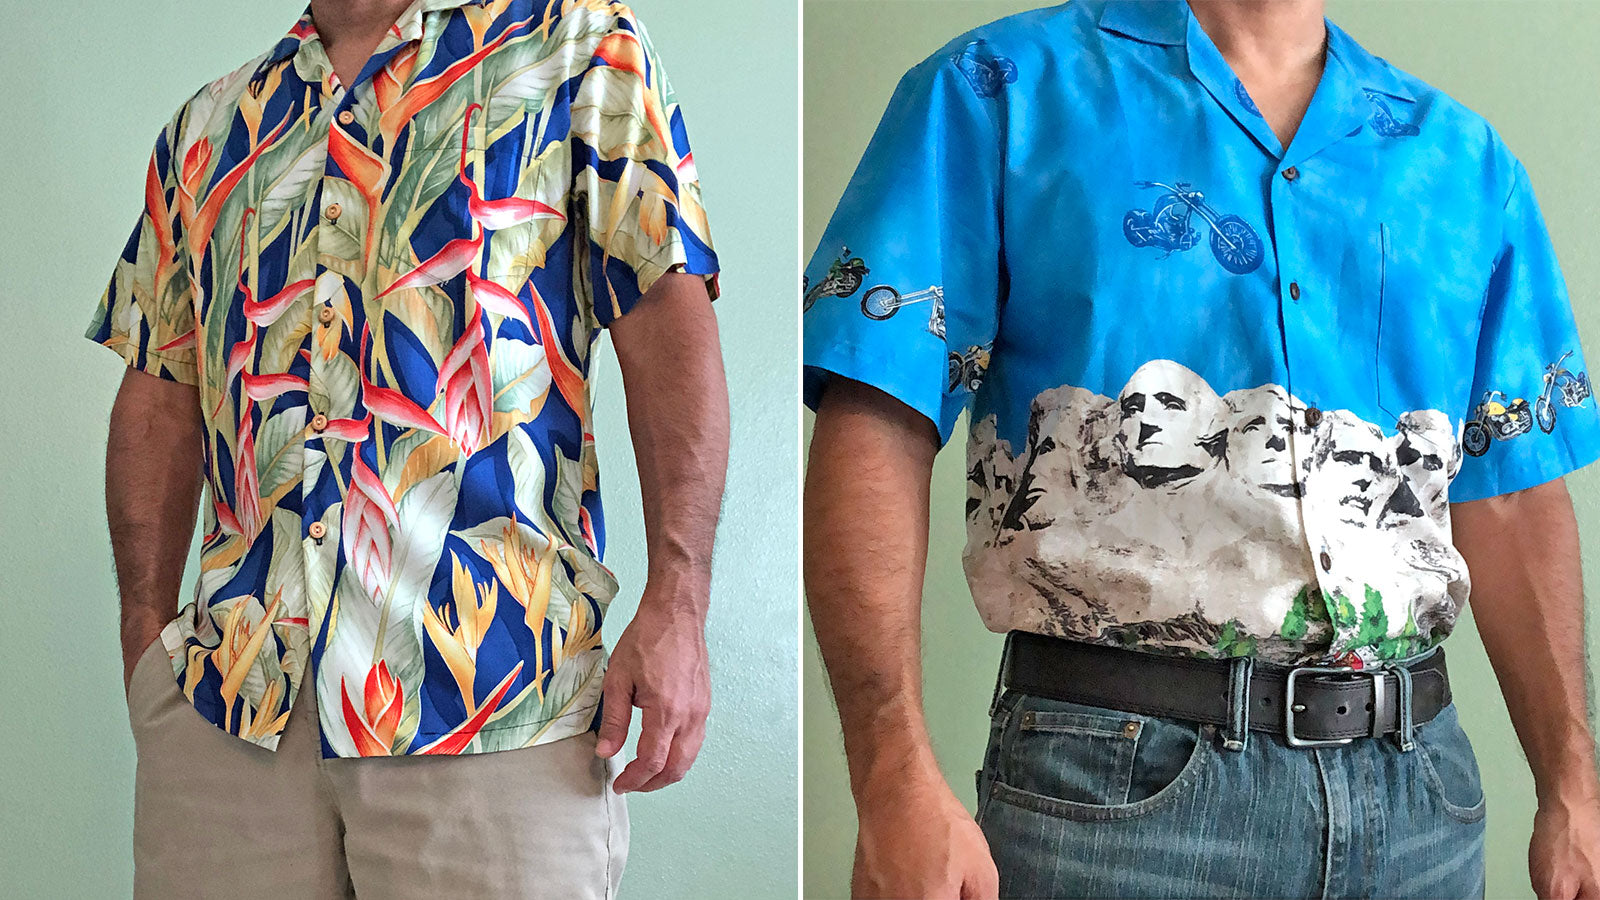 Should You Wear Your Hawaiian Shirt Tucked or Untucked?